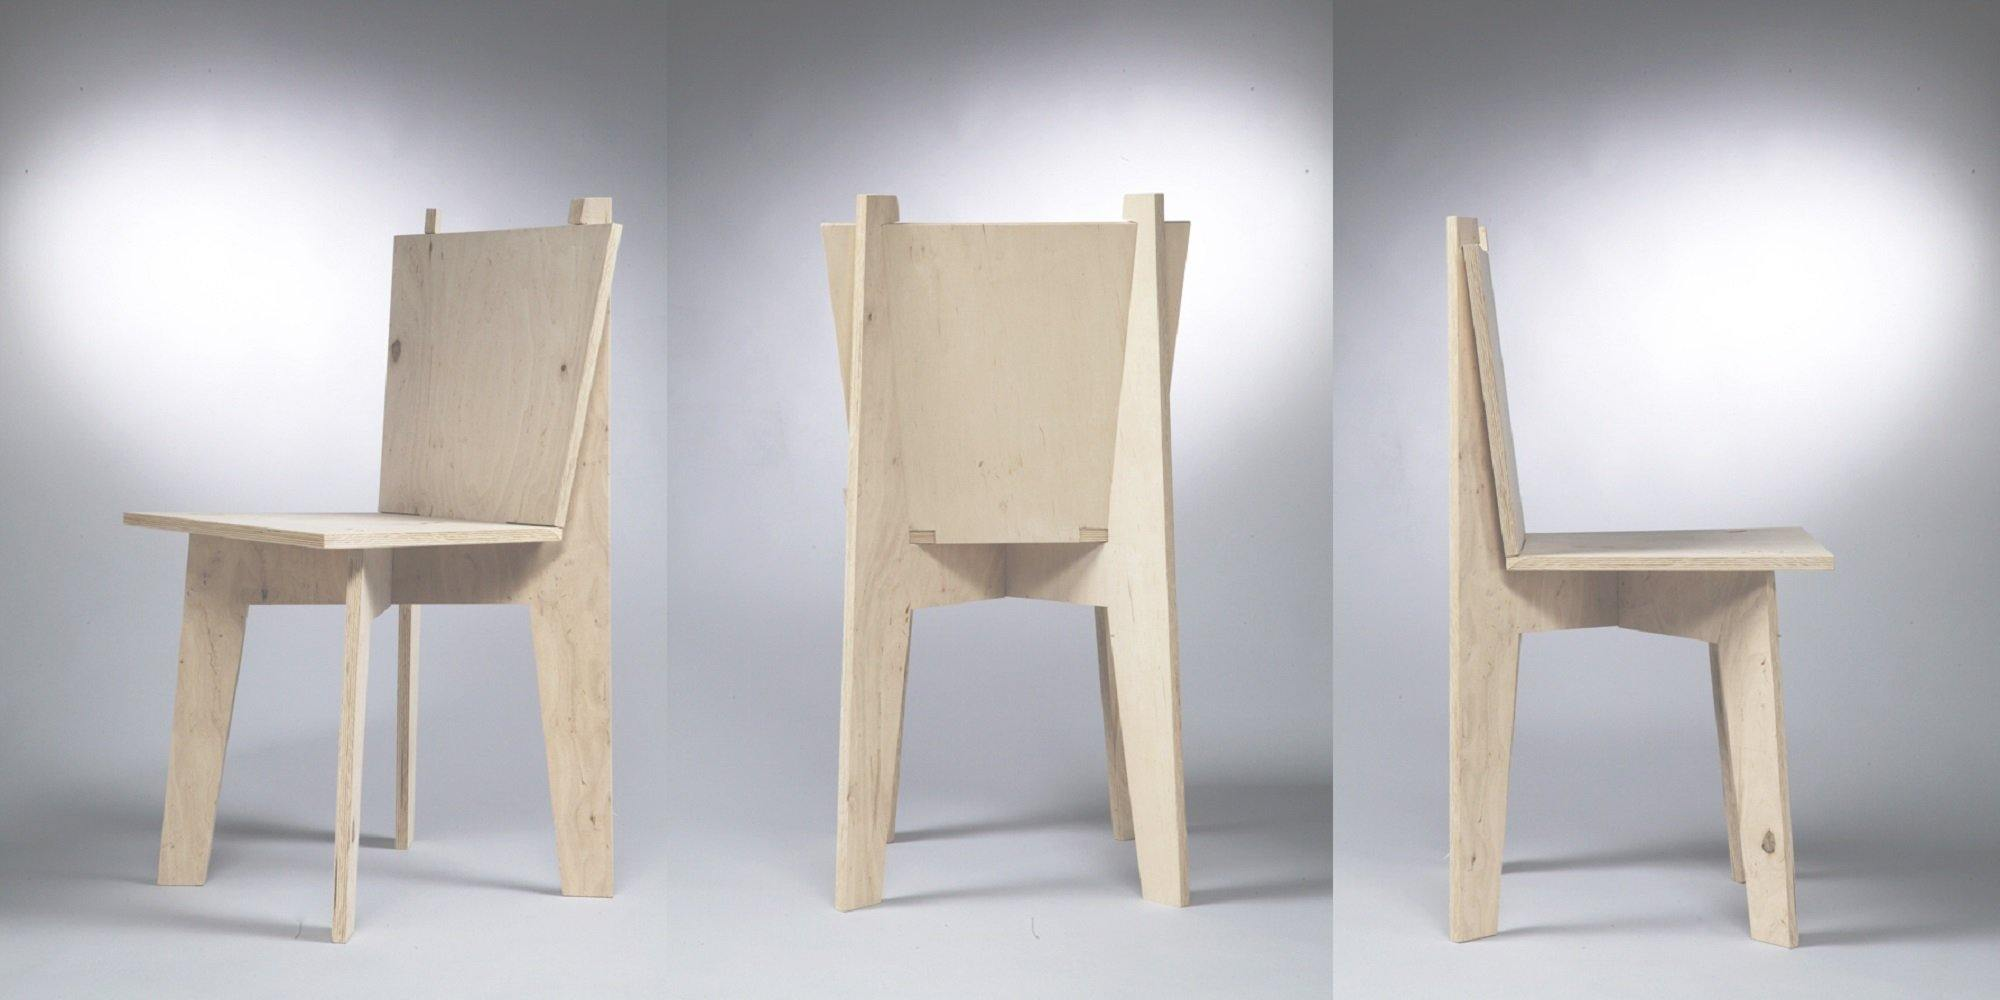 Simple Furniture Chair - skleia.com - handmade ergonomic ecologic plywood furniture